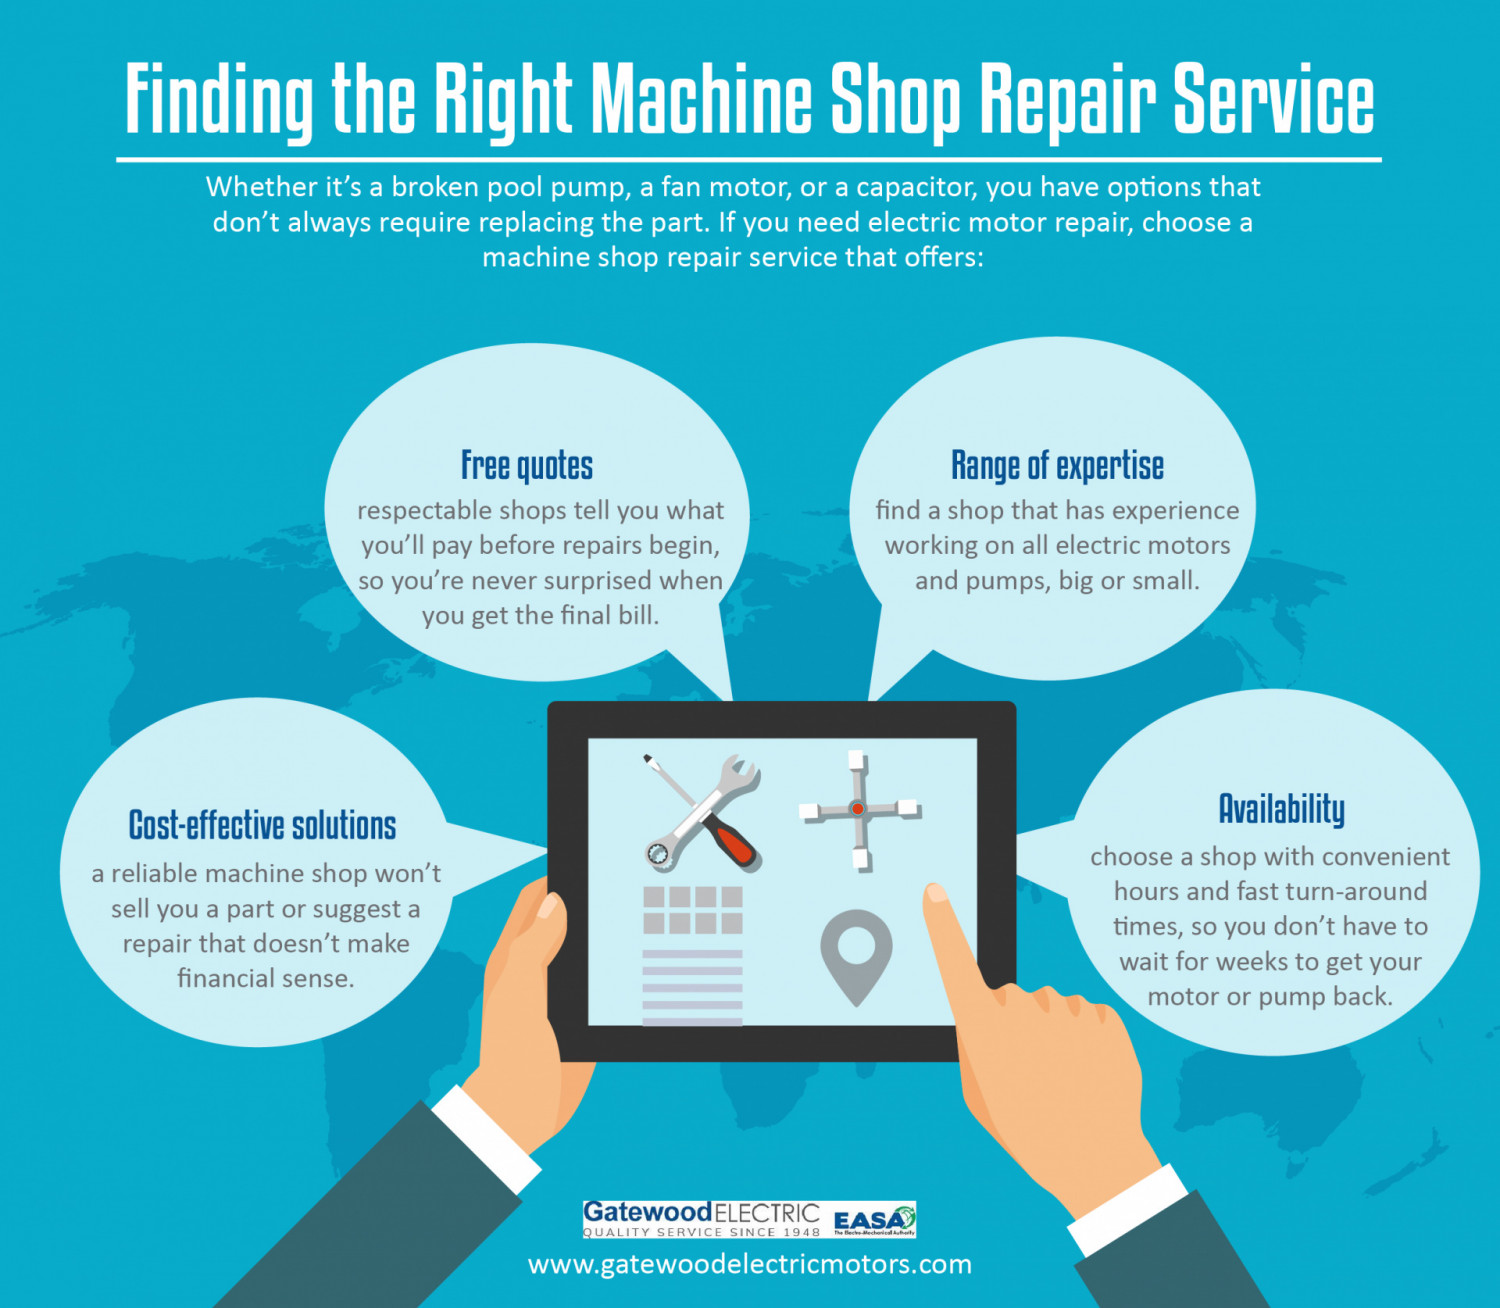 Finding the Right Machine Shop Repair Service Infographic